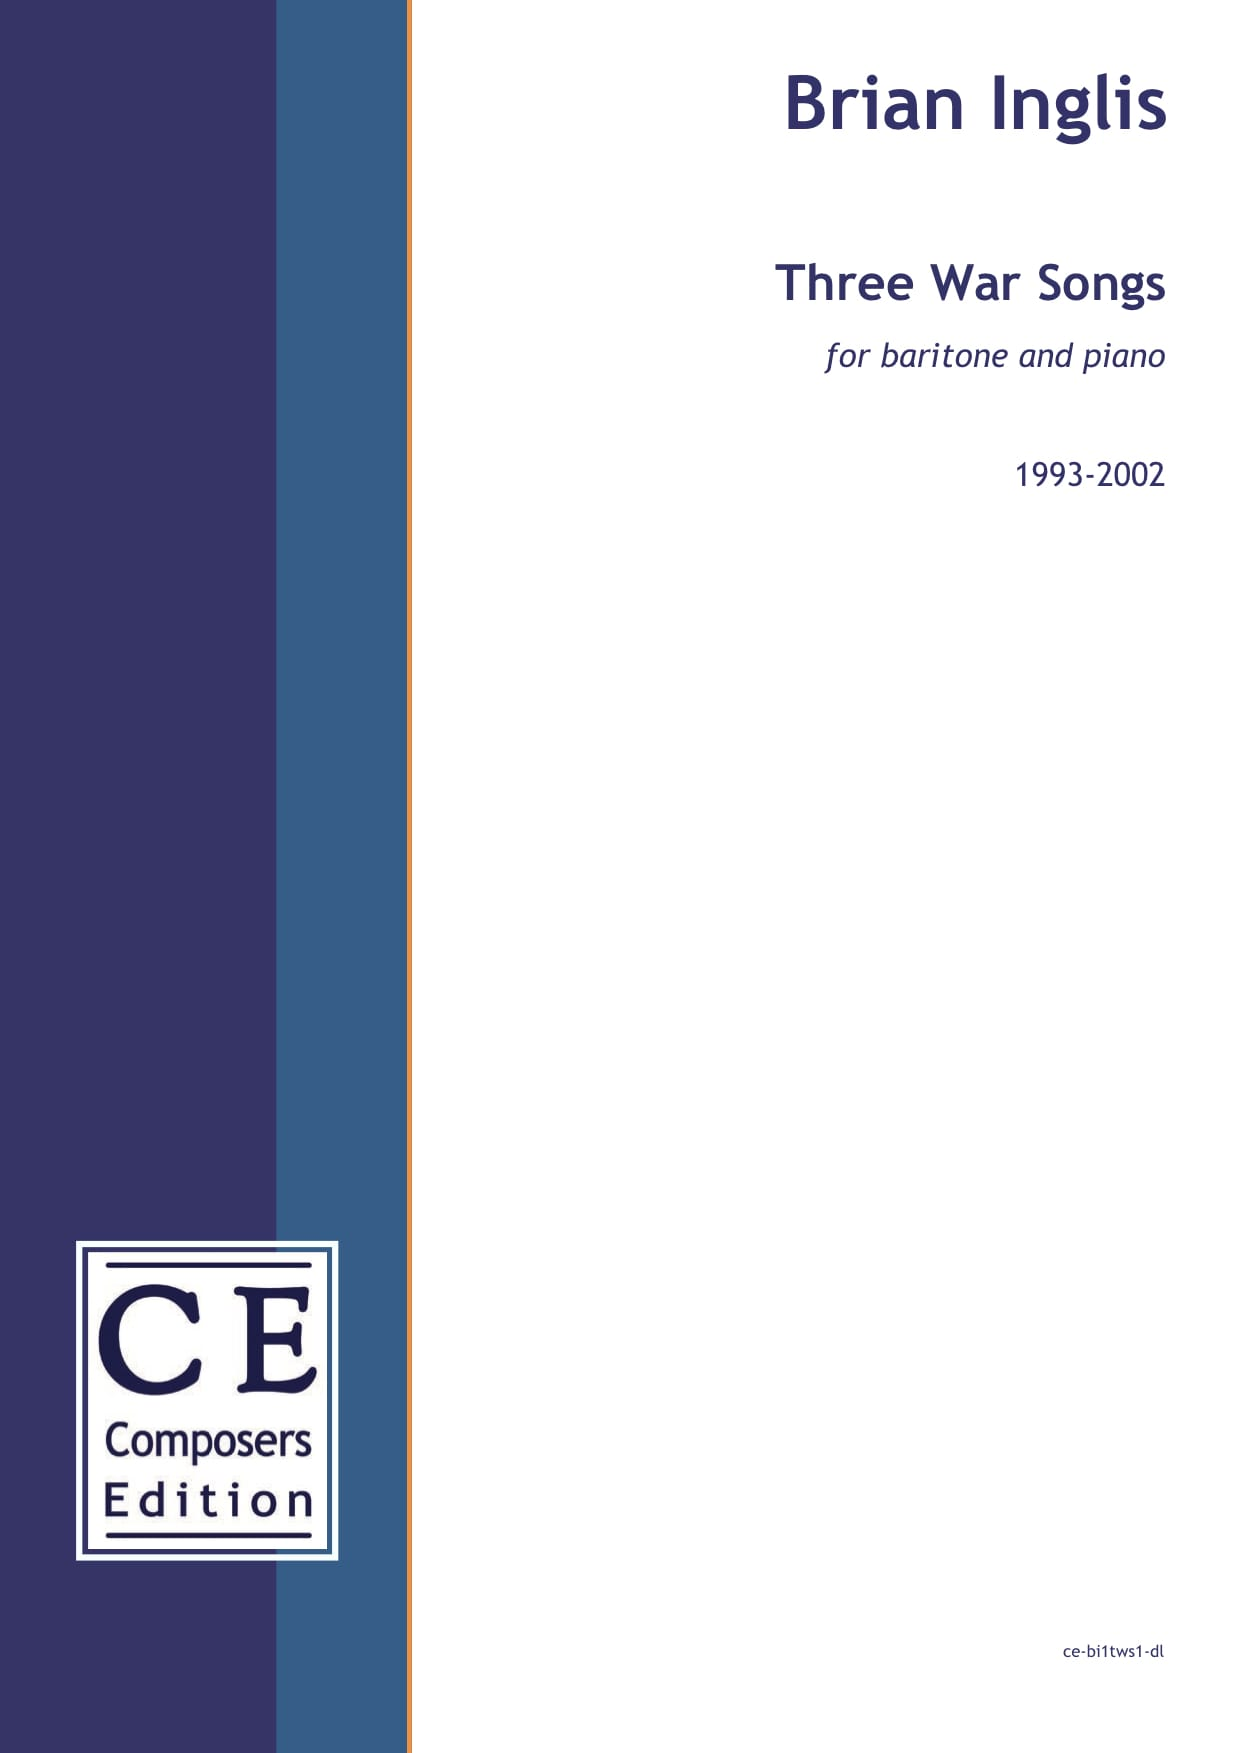 Brian Inglis: Three War Songs for baritone and piano